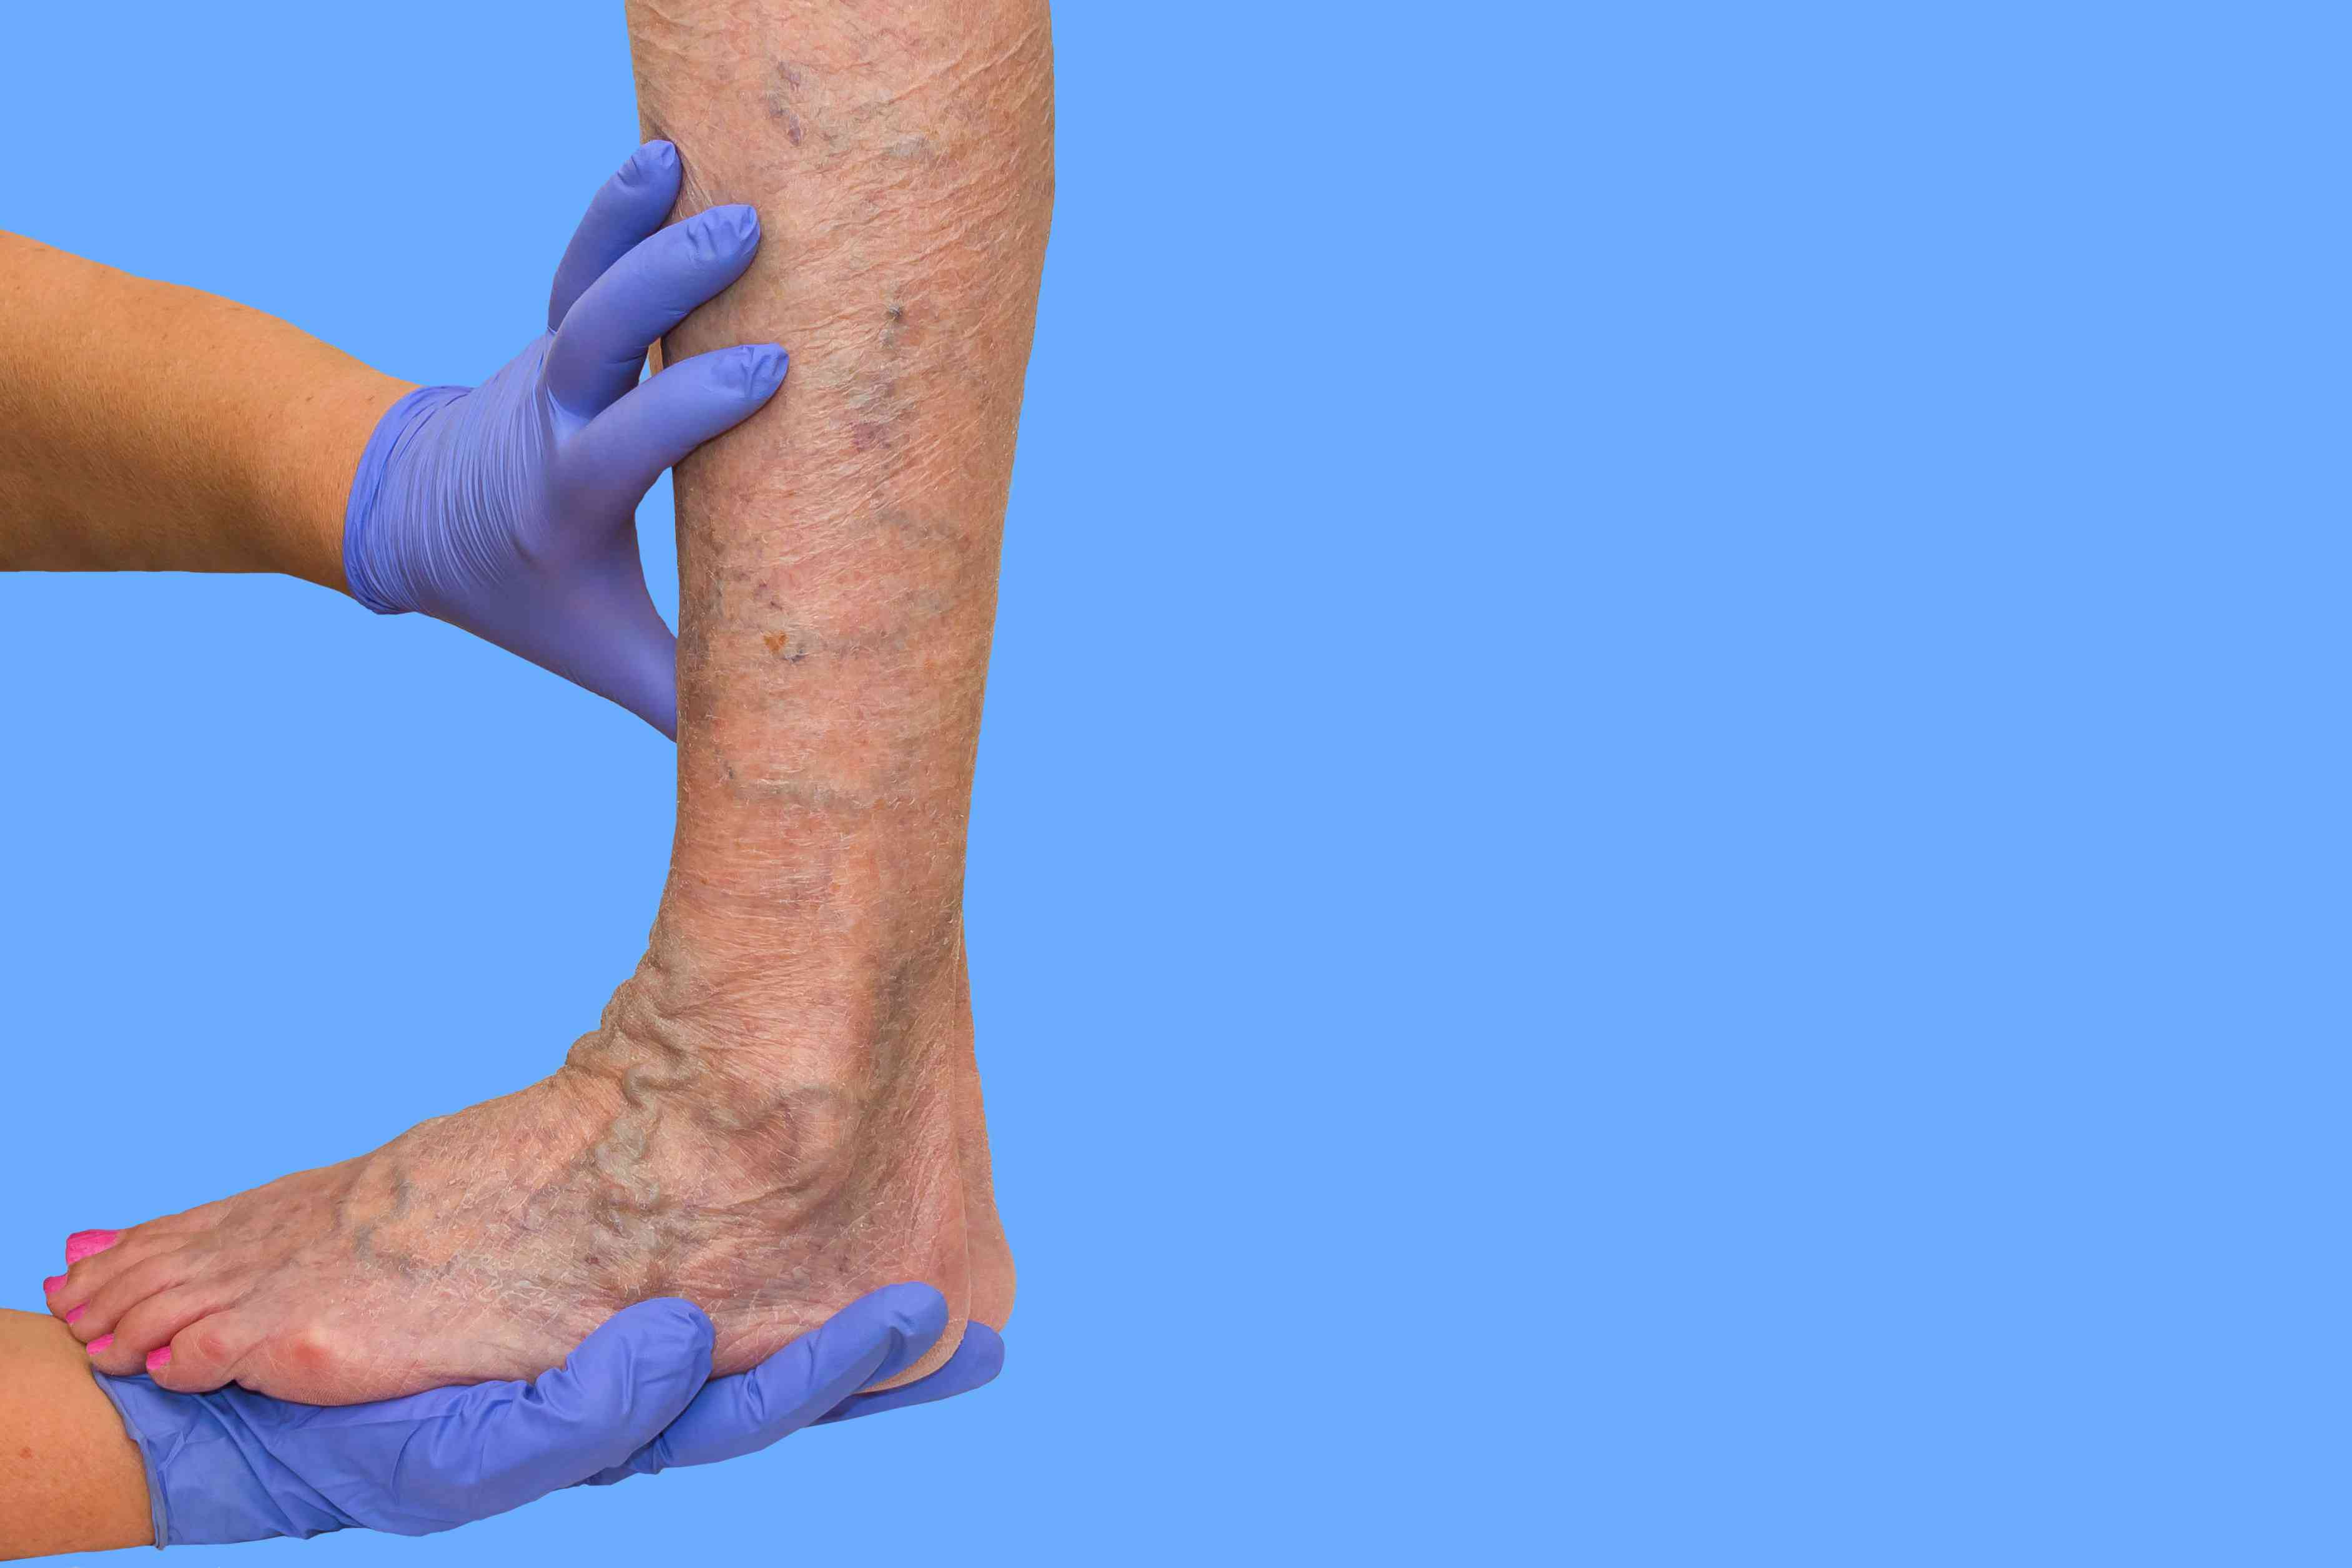 Lower limb vascular examination because suspect of venous insufficiency